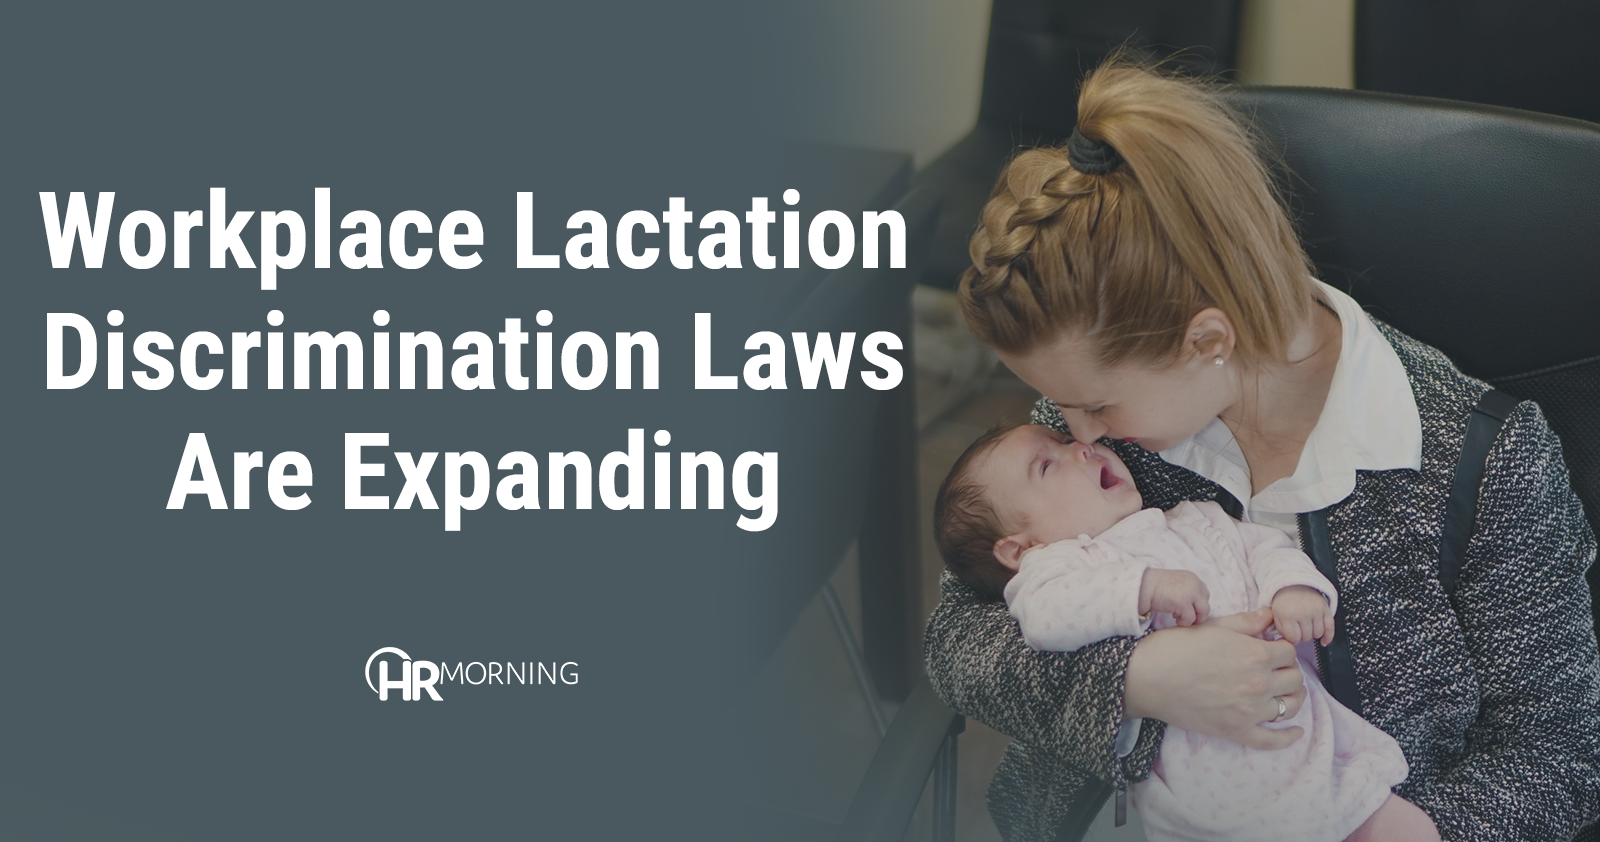 Workplace lactation discrimination laws are expanding